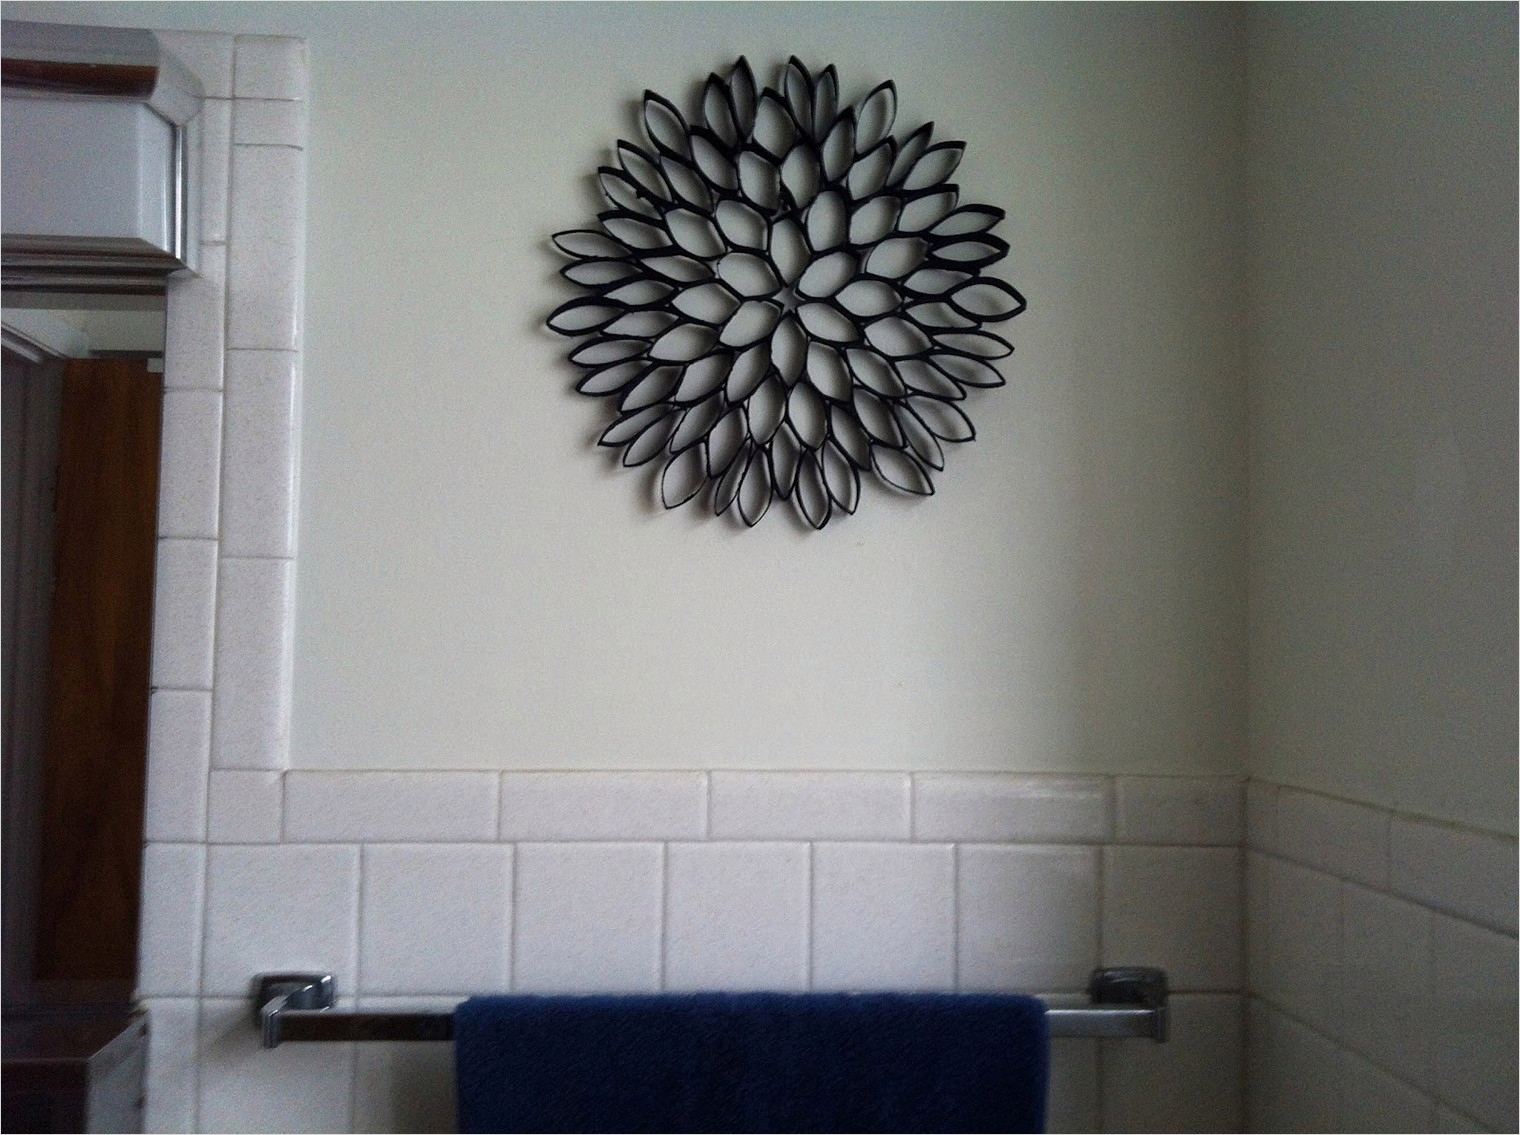 44 Creative Craft Wall Decoration Ideas 49 toilet Paper Roll Art for Wall Decor 7